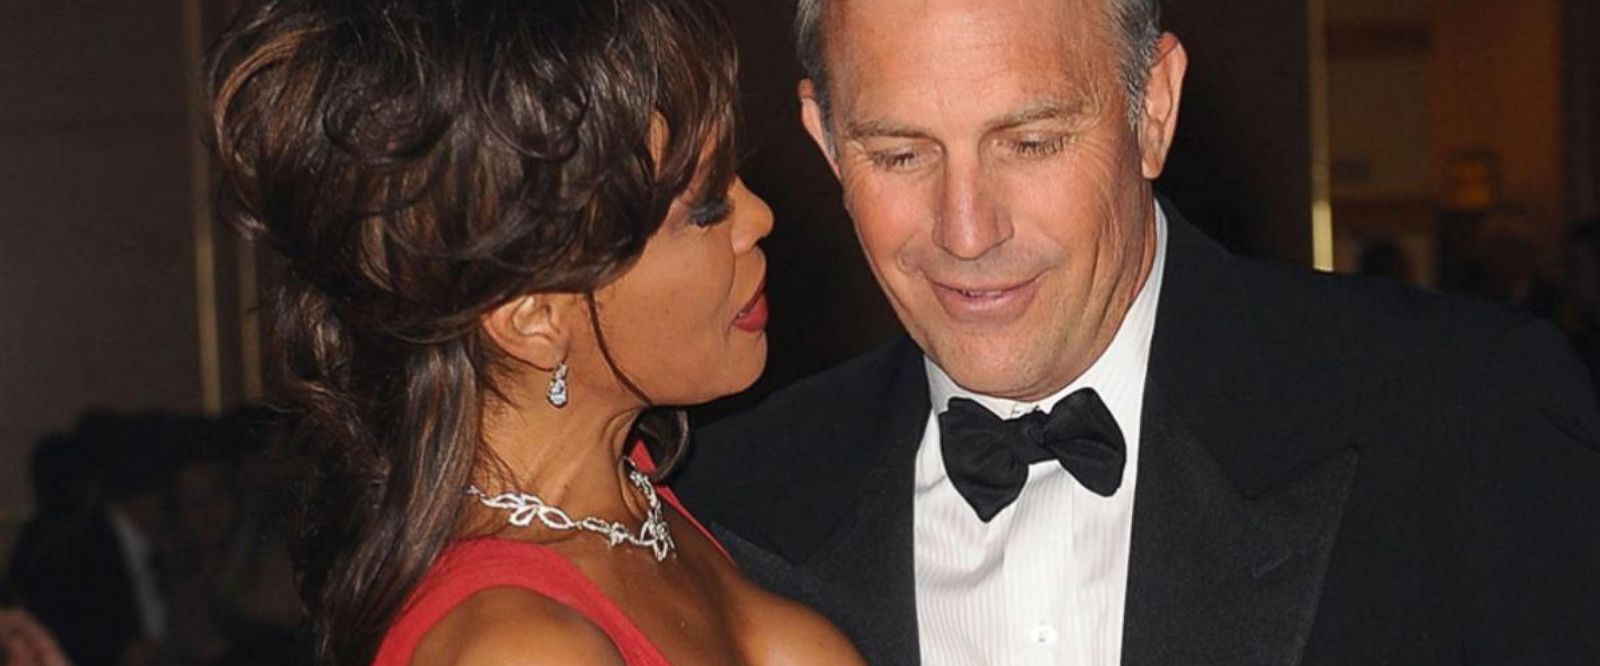 VIDEO: 'GMA' Hot List: Kevin Costner remembers Whitney Houston in 'The Bodyguard'